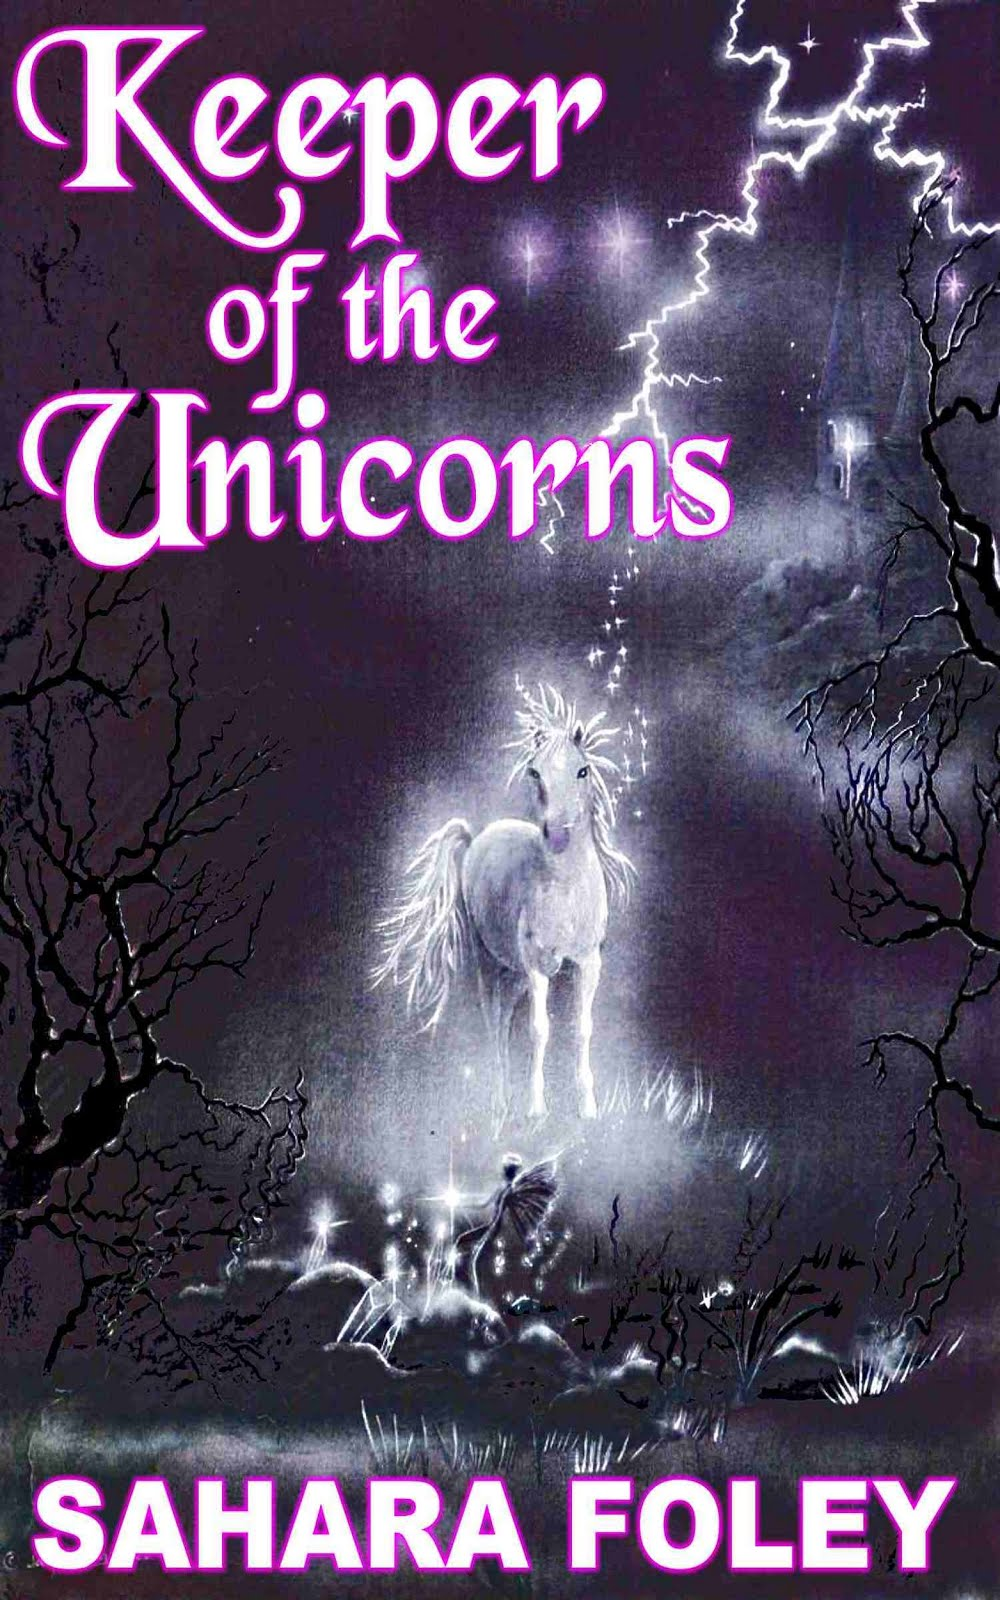 KEEPER OF THE UNICORNS